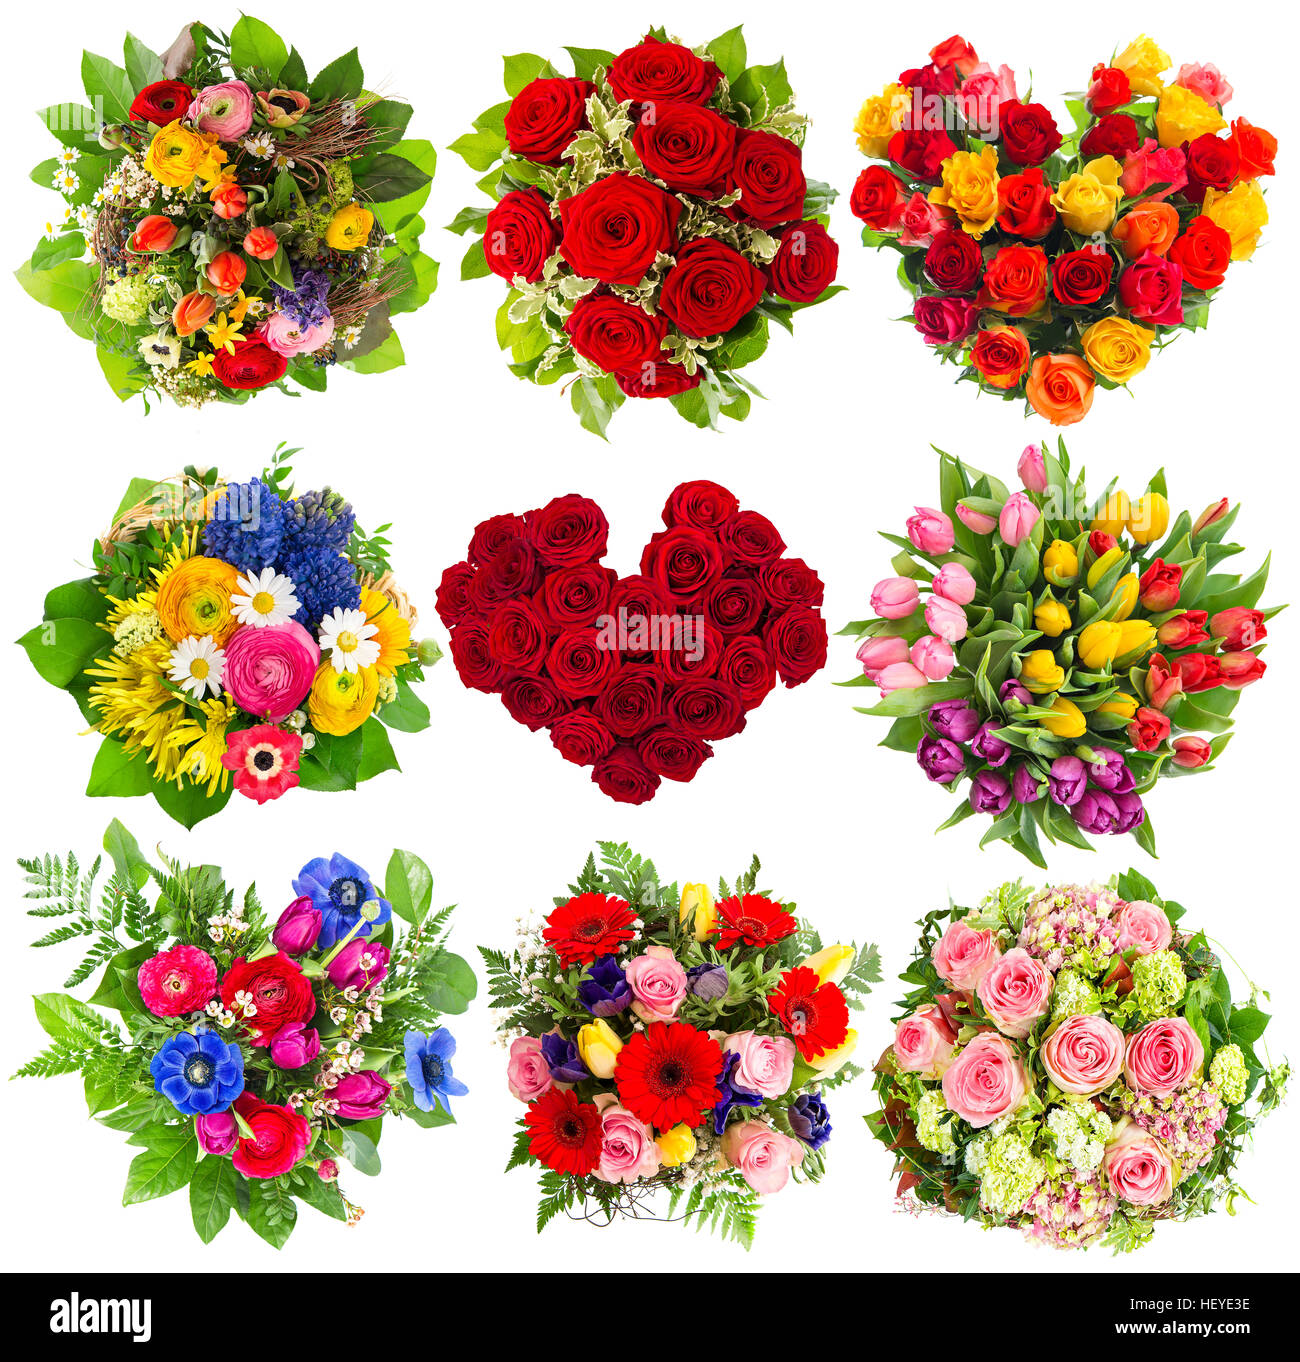 Bouquets of colorful flowers for birthday wedding mothers day bouquets of colorful flowers for birthday wedding mothers day easter holidays red roses izmirmasajfo Image collections